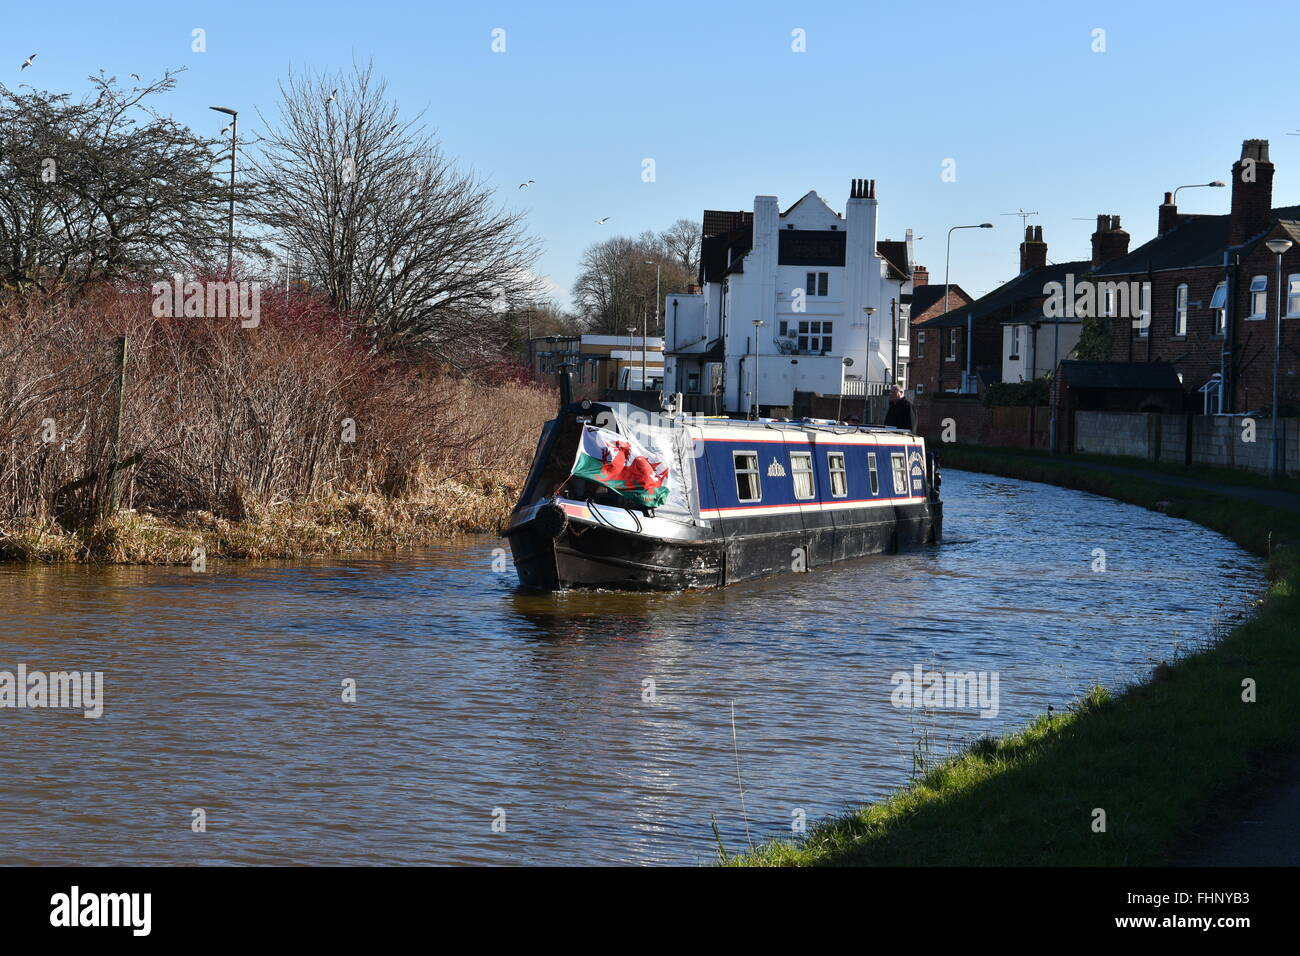 Narrowboat on the Chester Canal - Stock Image